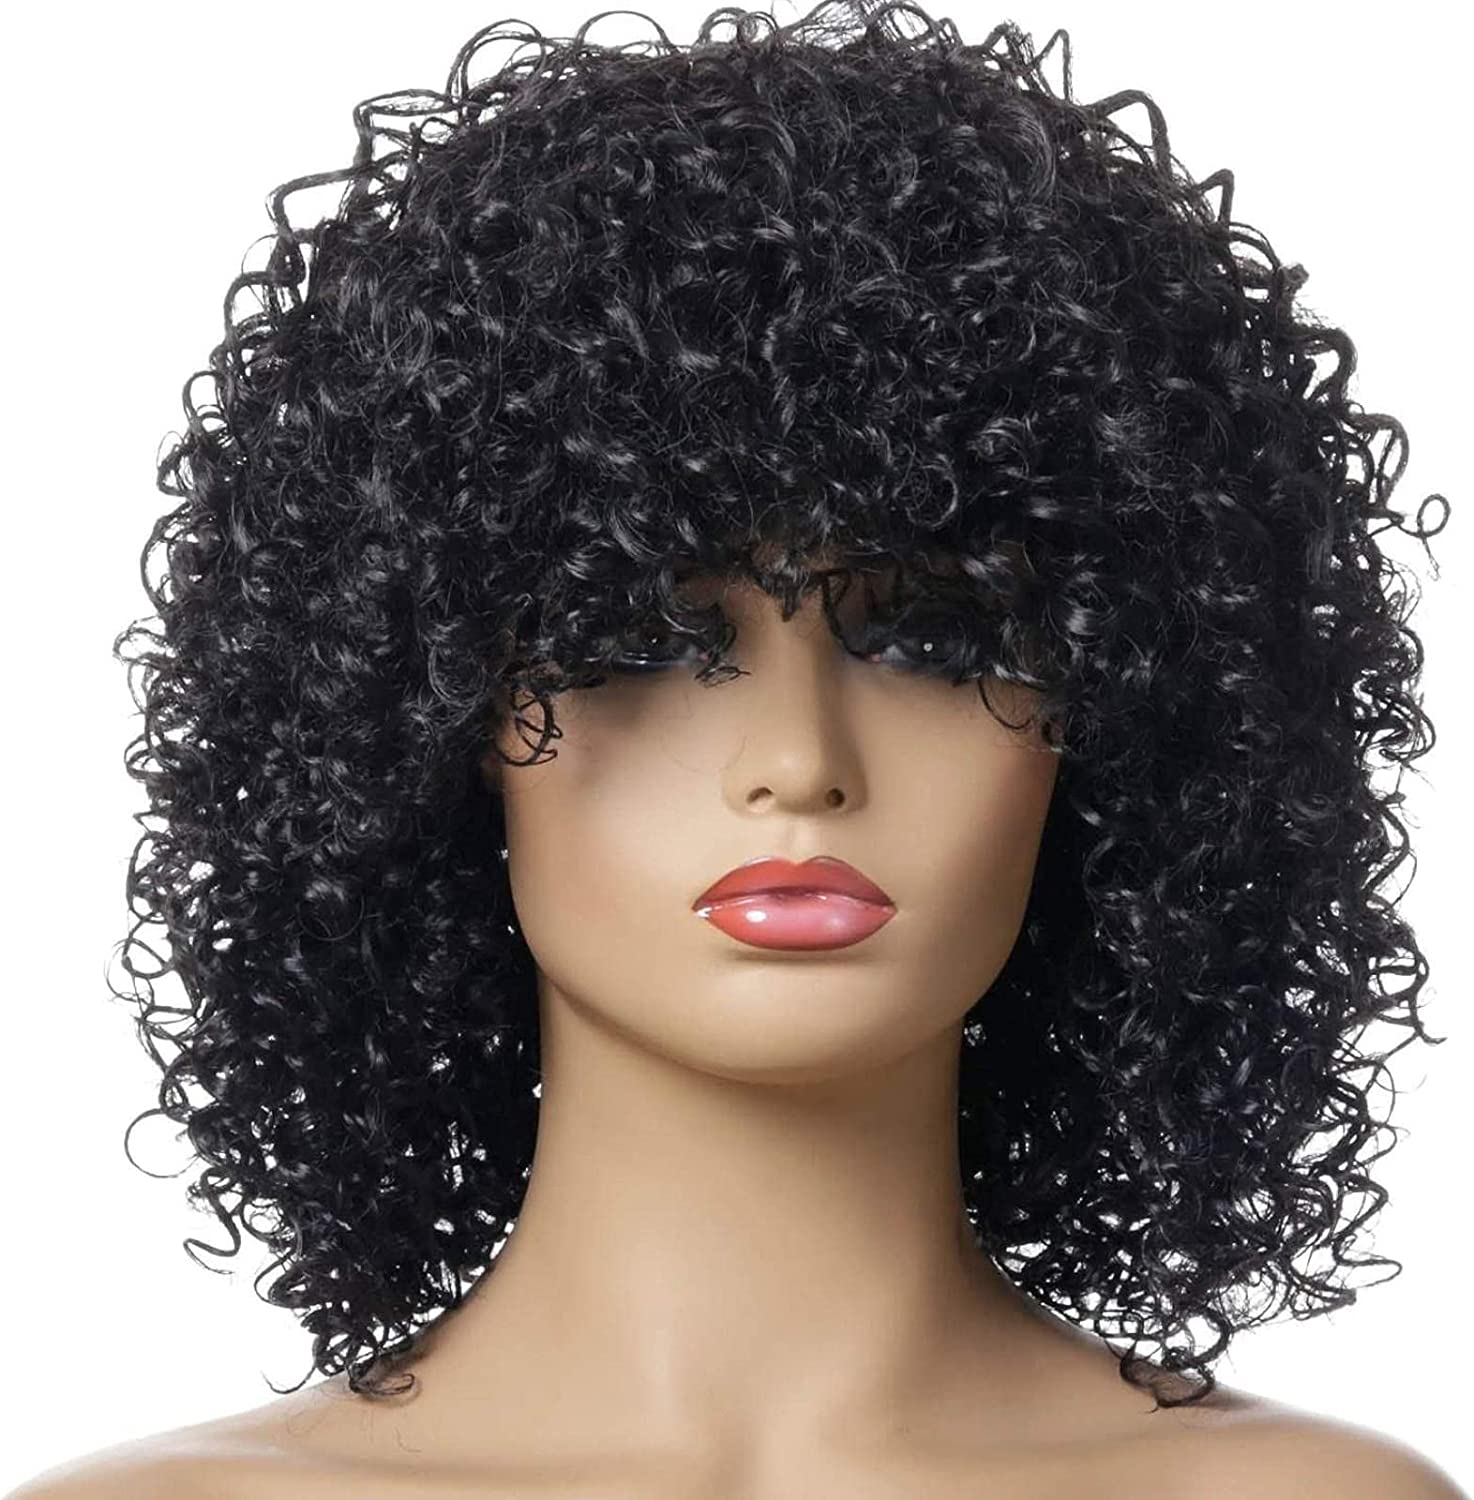 HTDYLHH Natural Beautiful Wigs Short latest for Curly Max 63% OFF Black Kinky